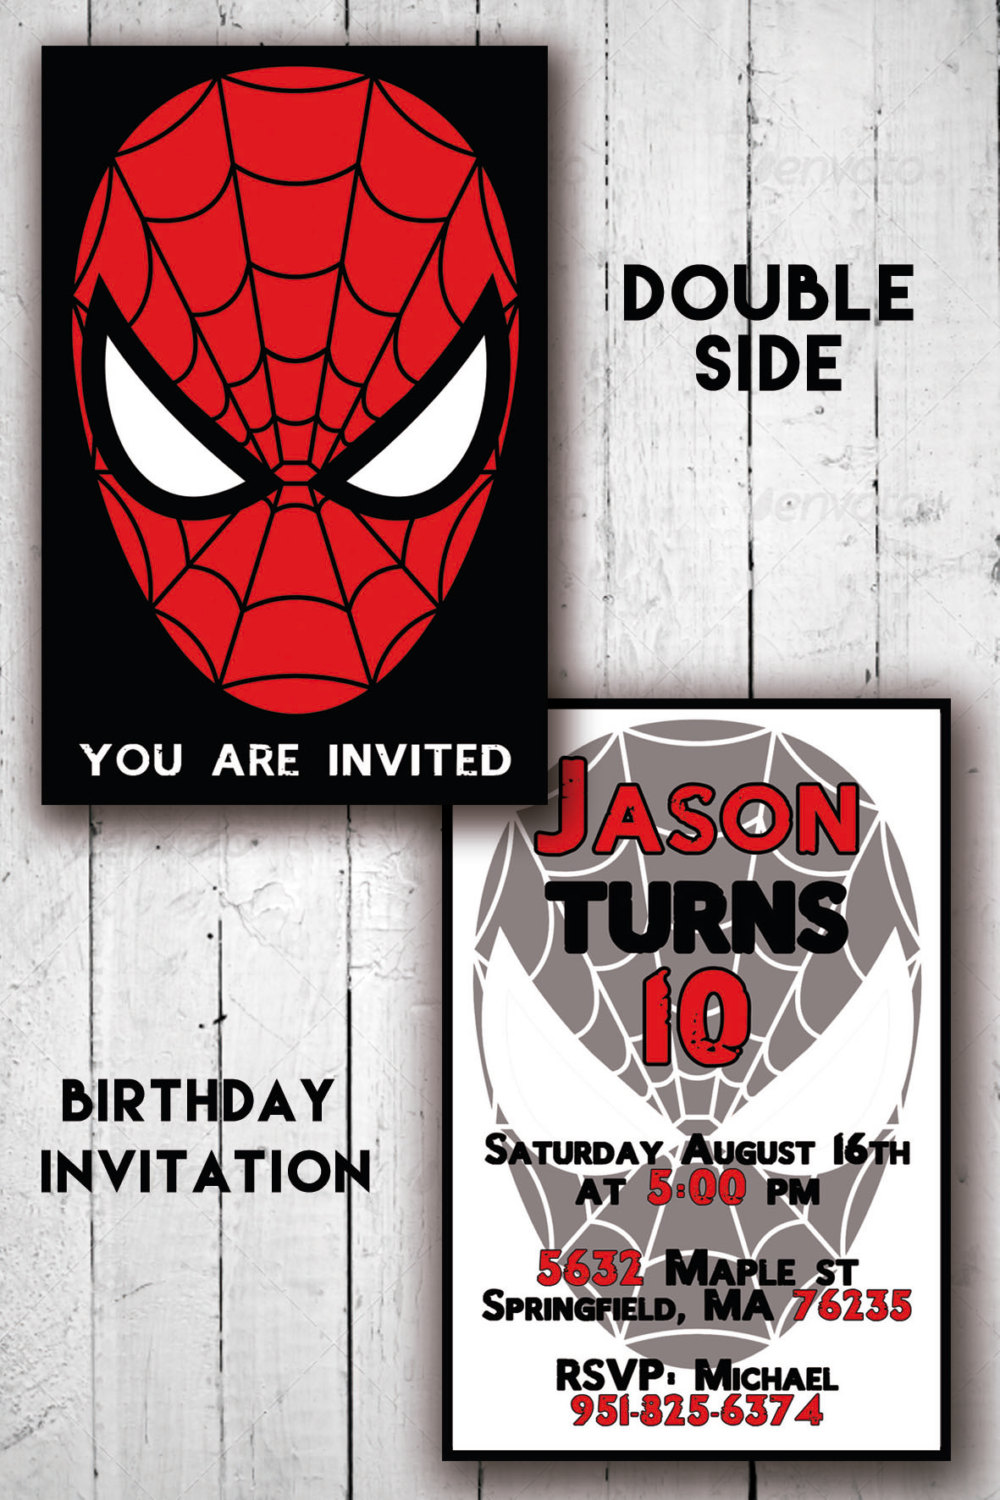 graphic regarding Printable Spiderman Invitations referred to as DS SPIDERMAN INVITATION - Birthday Invitation - Little ones Occasion invites - Printable - Invitacion offered as a result of artofjah